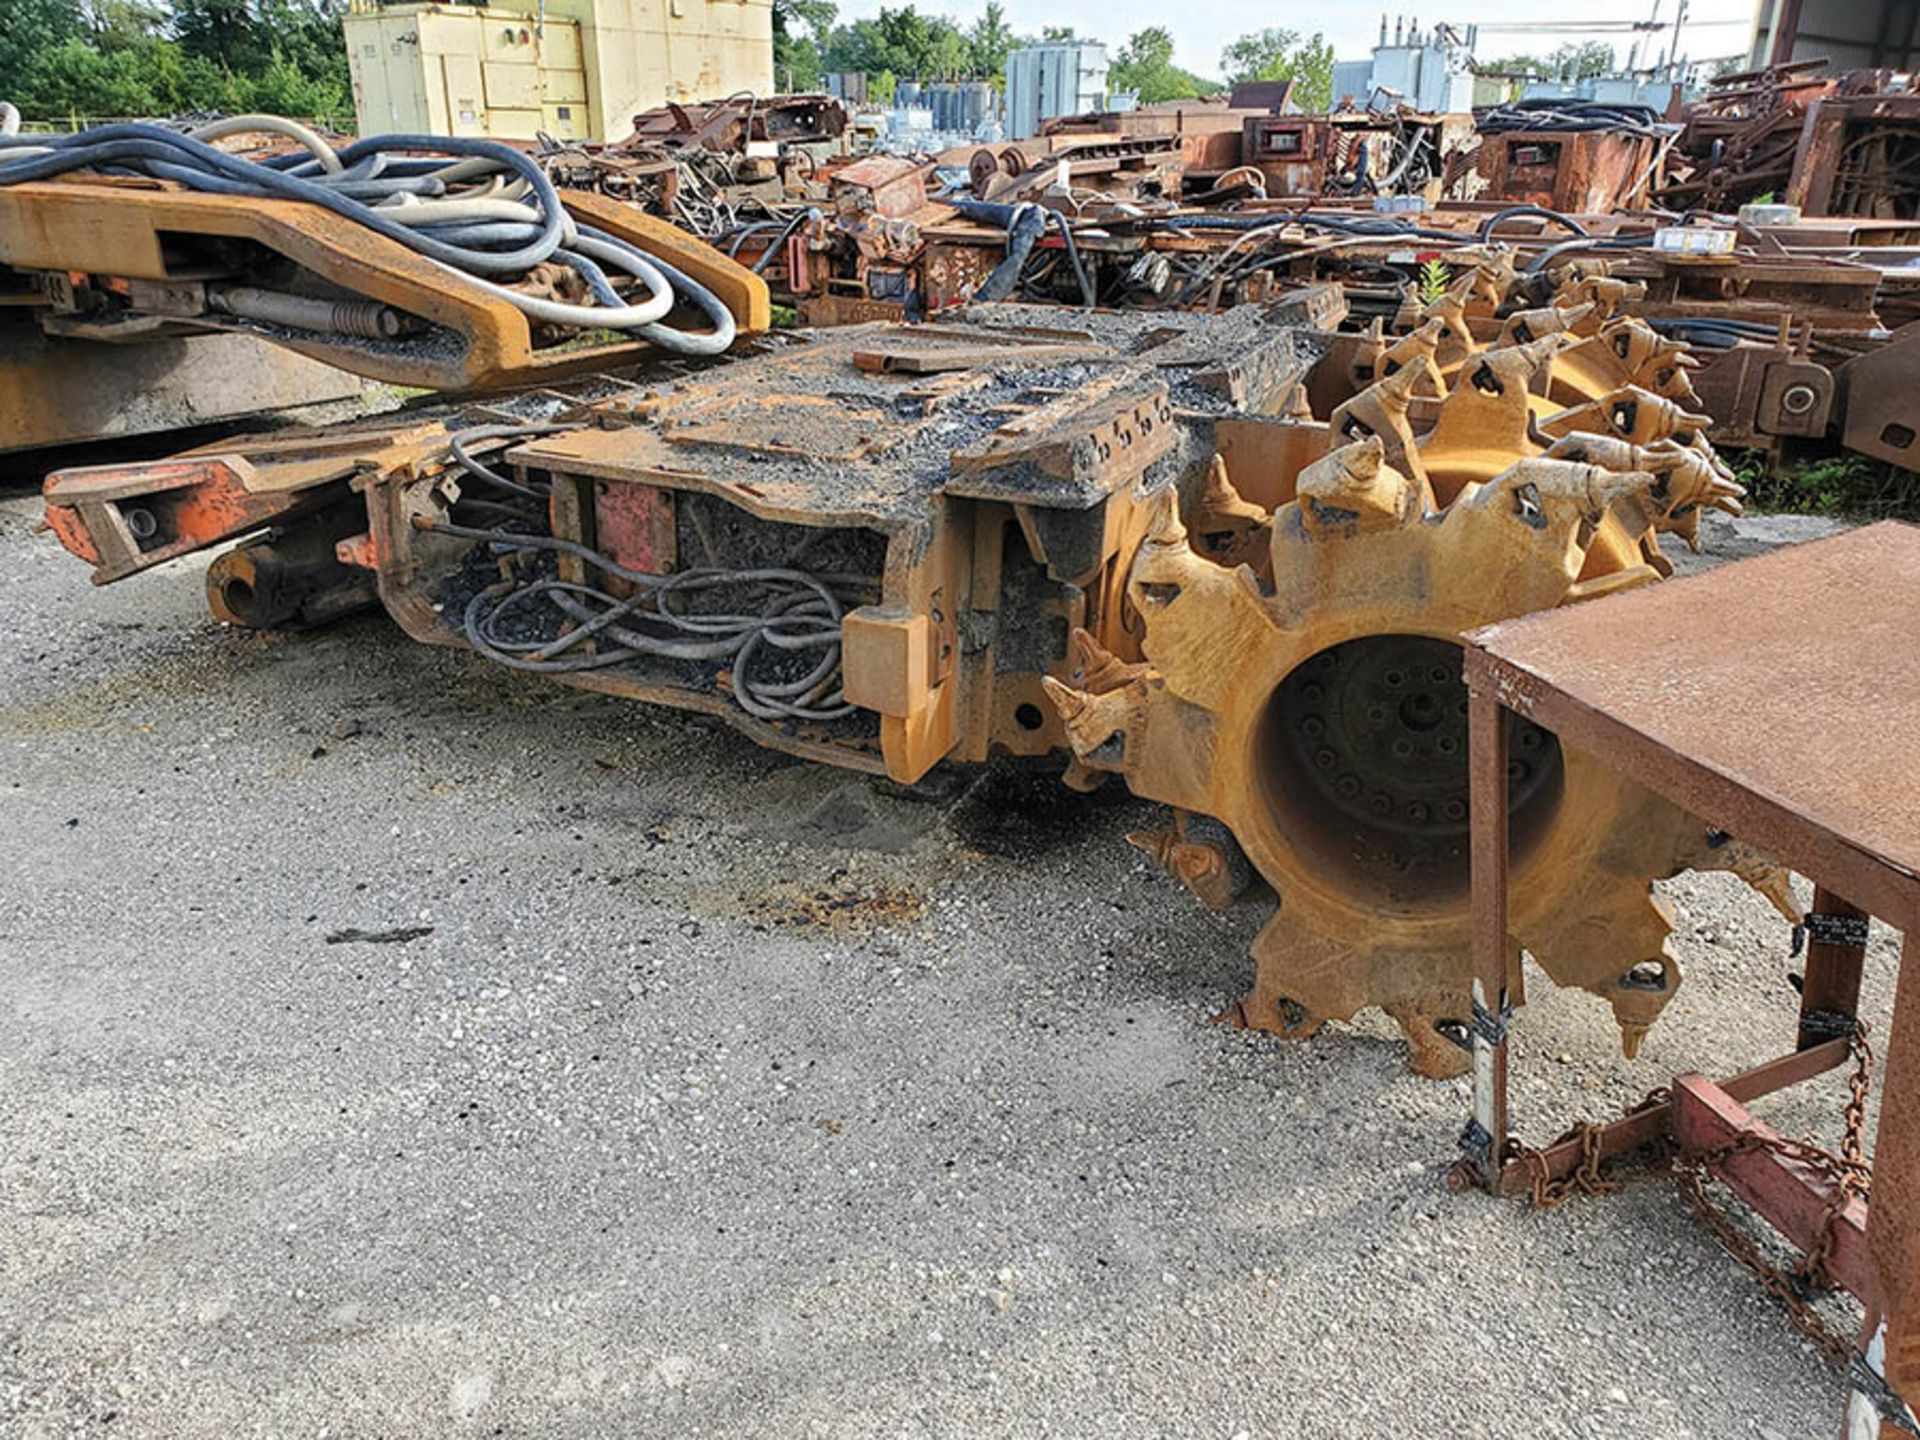 Lot 207 - JOY 14CM-9 CONTINUOUS MINER, S/N JM5498C, C2C MACHINE, STRATA PROCS, LOCATION: CZAR SHOP